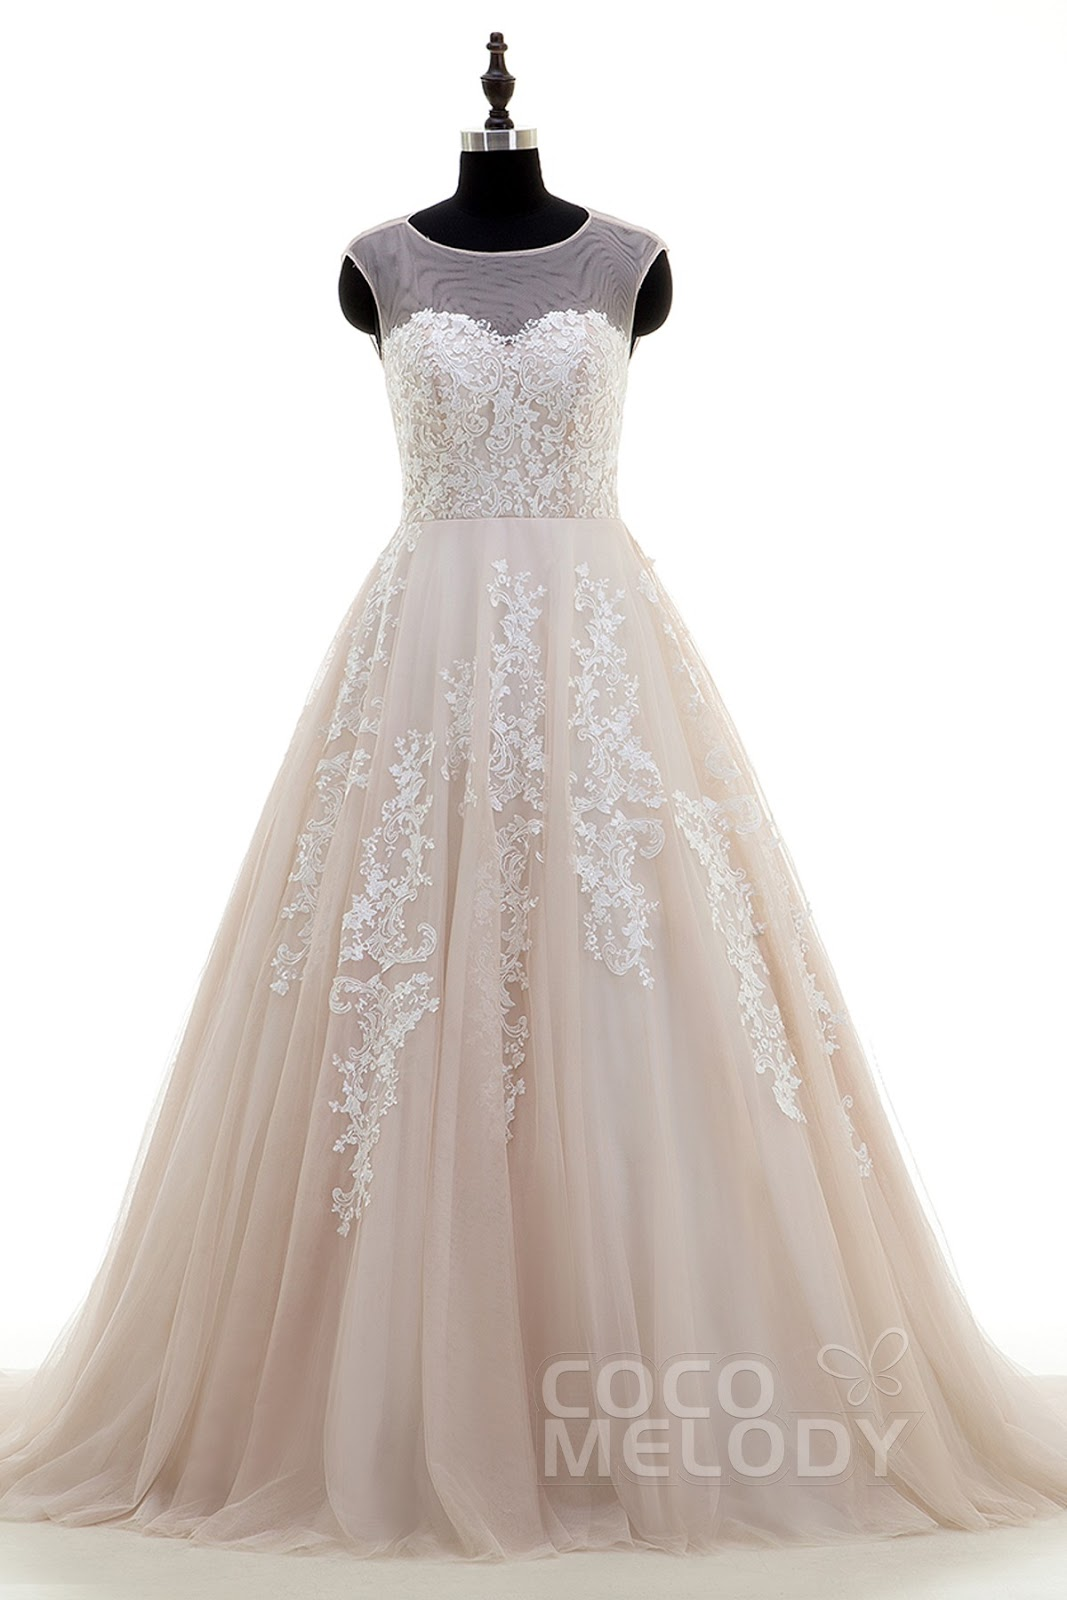 2013 the most beautiful wedding dress: The choice of wedding dress ...